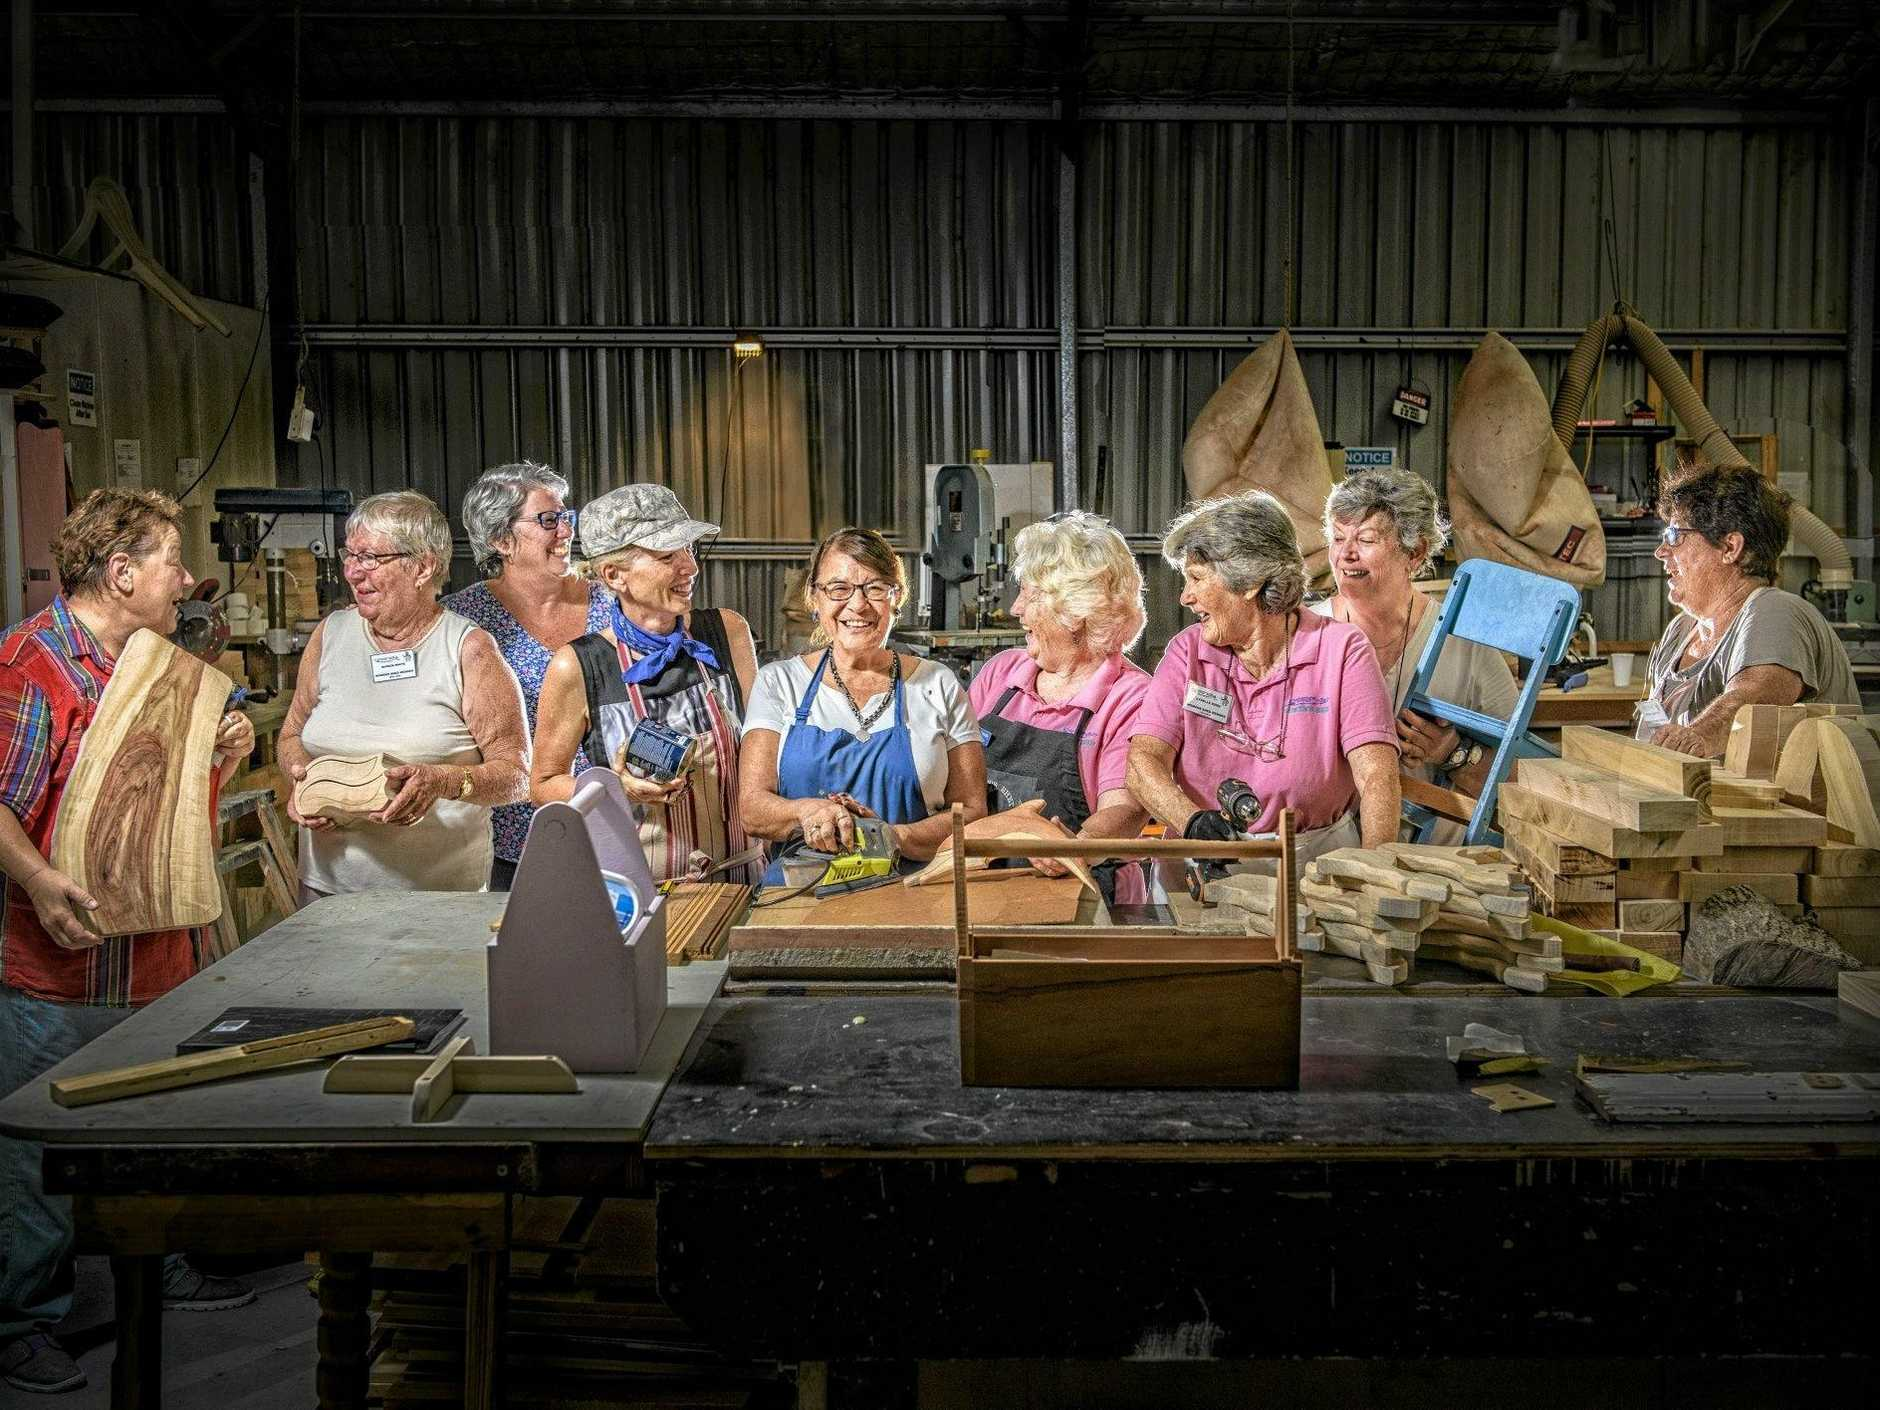 Members of the CRU3A Women's Shed gather together for a quick picture before working on their project in the Townsend workshop.